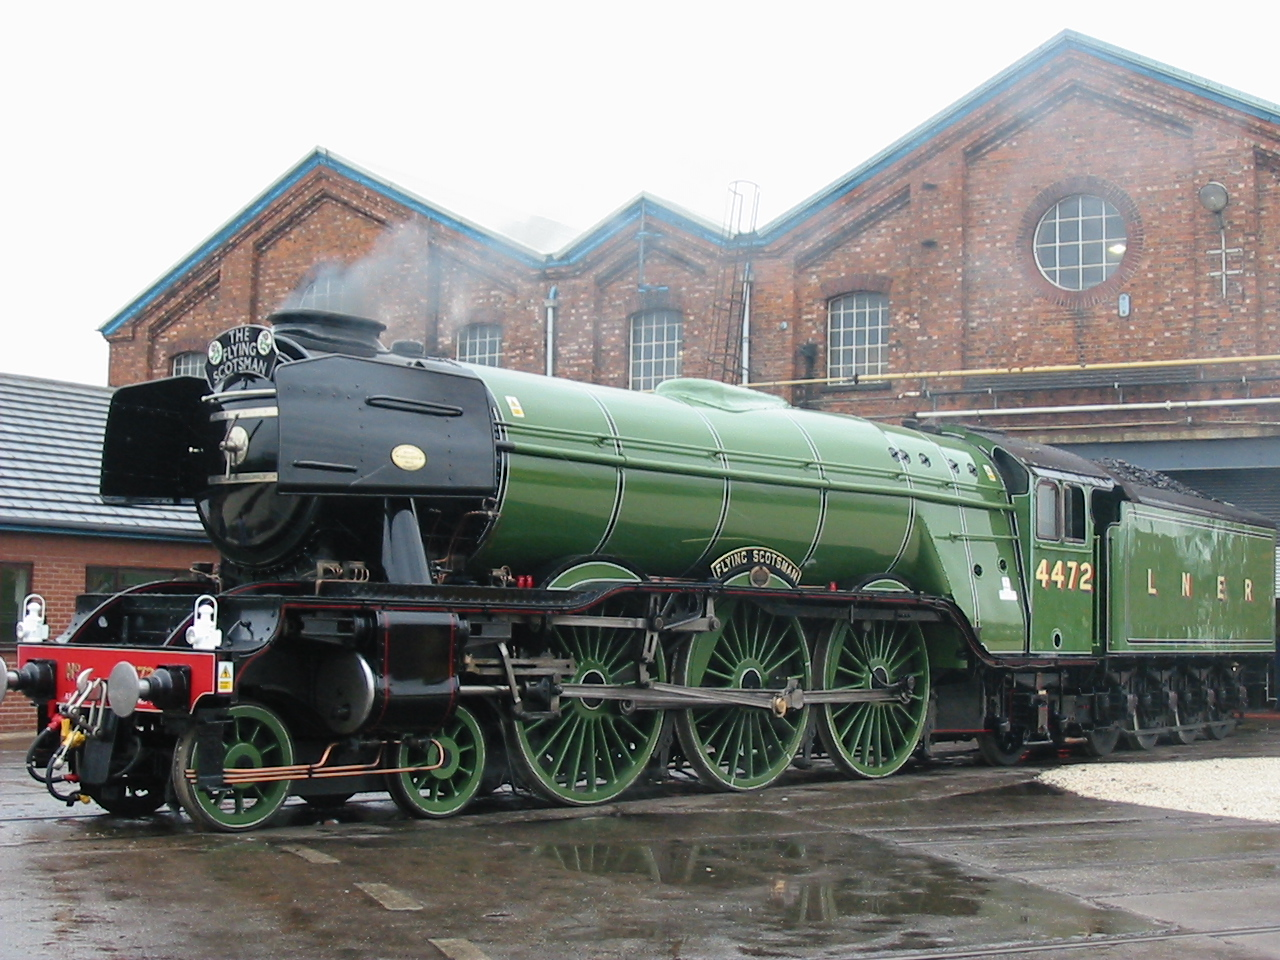 The Flying Scotsman in Doncaster